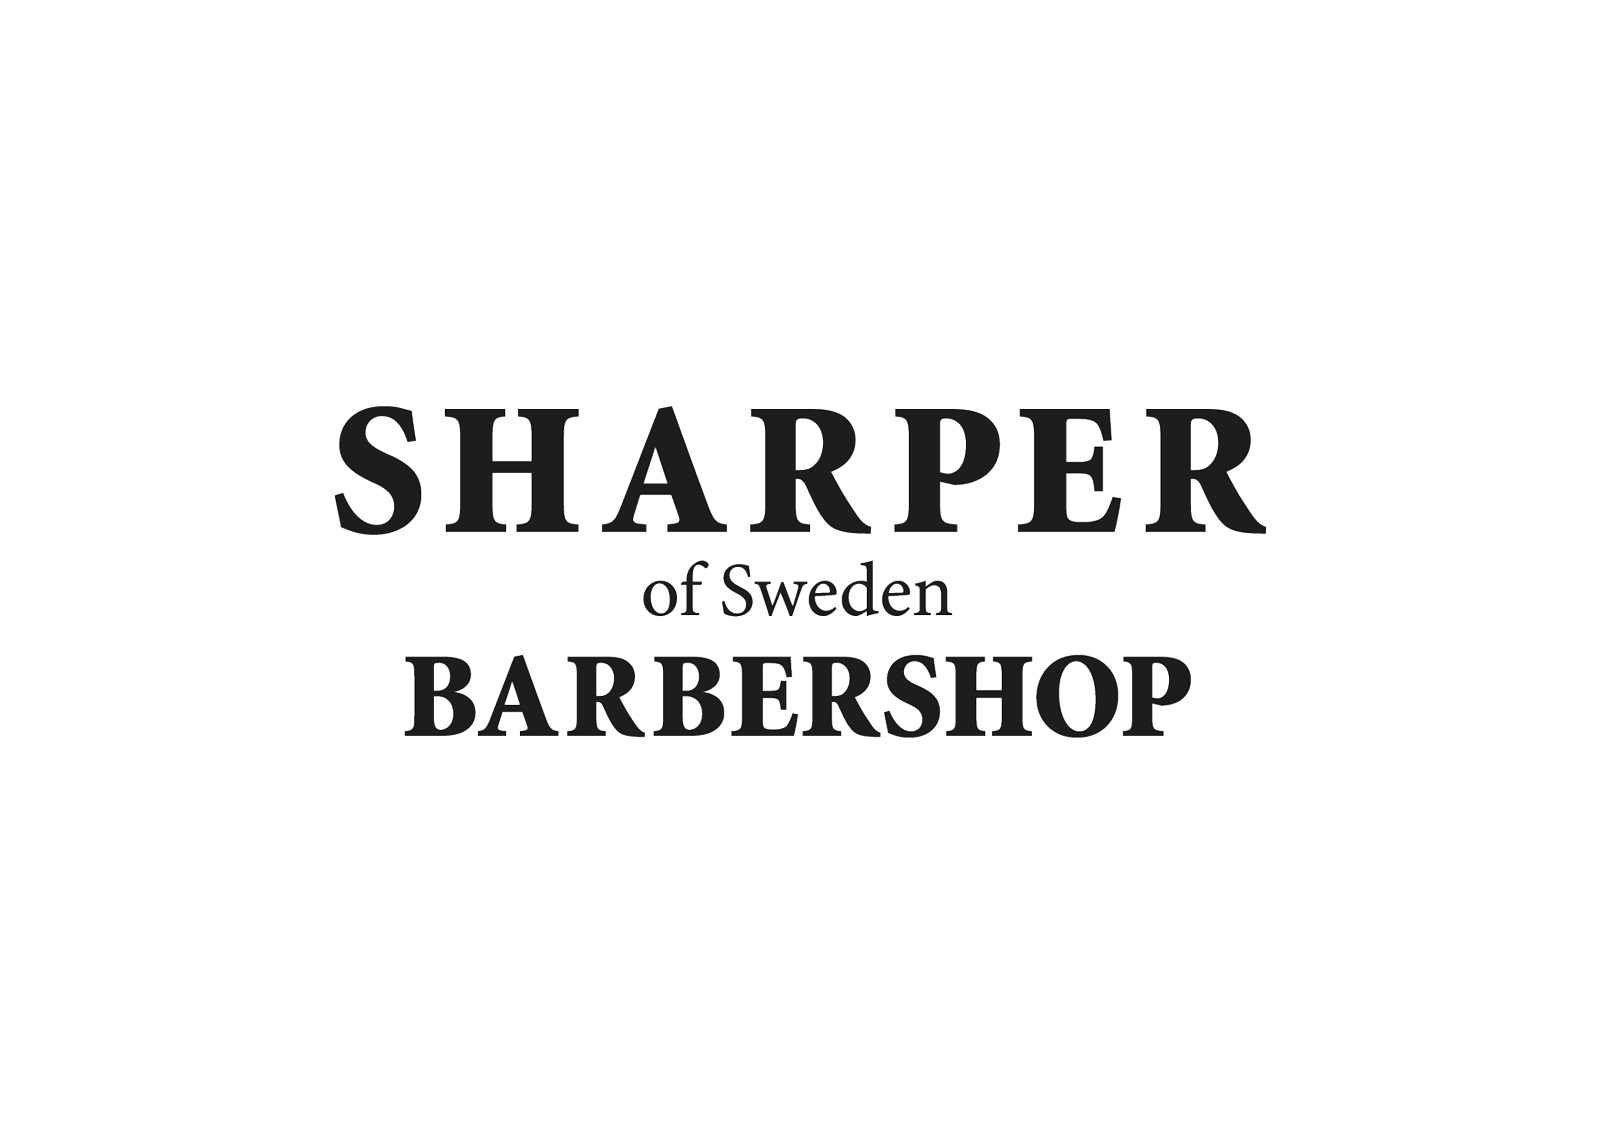 sharper-text-black.jpg